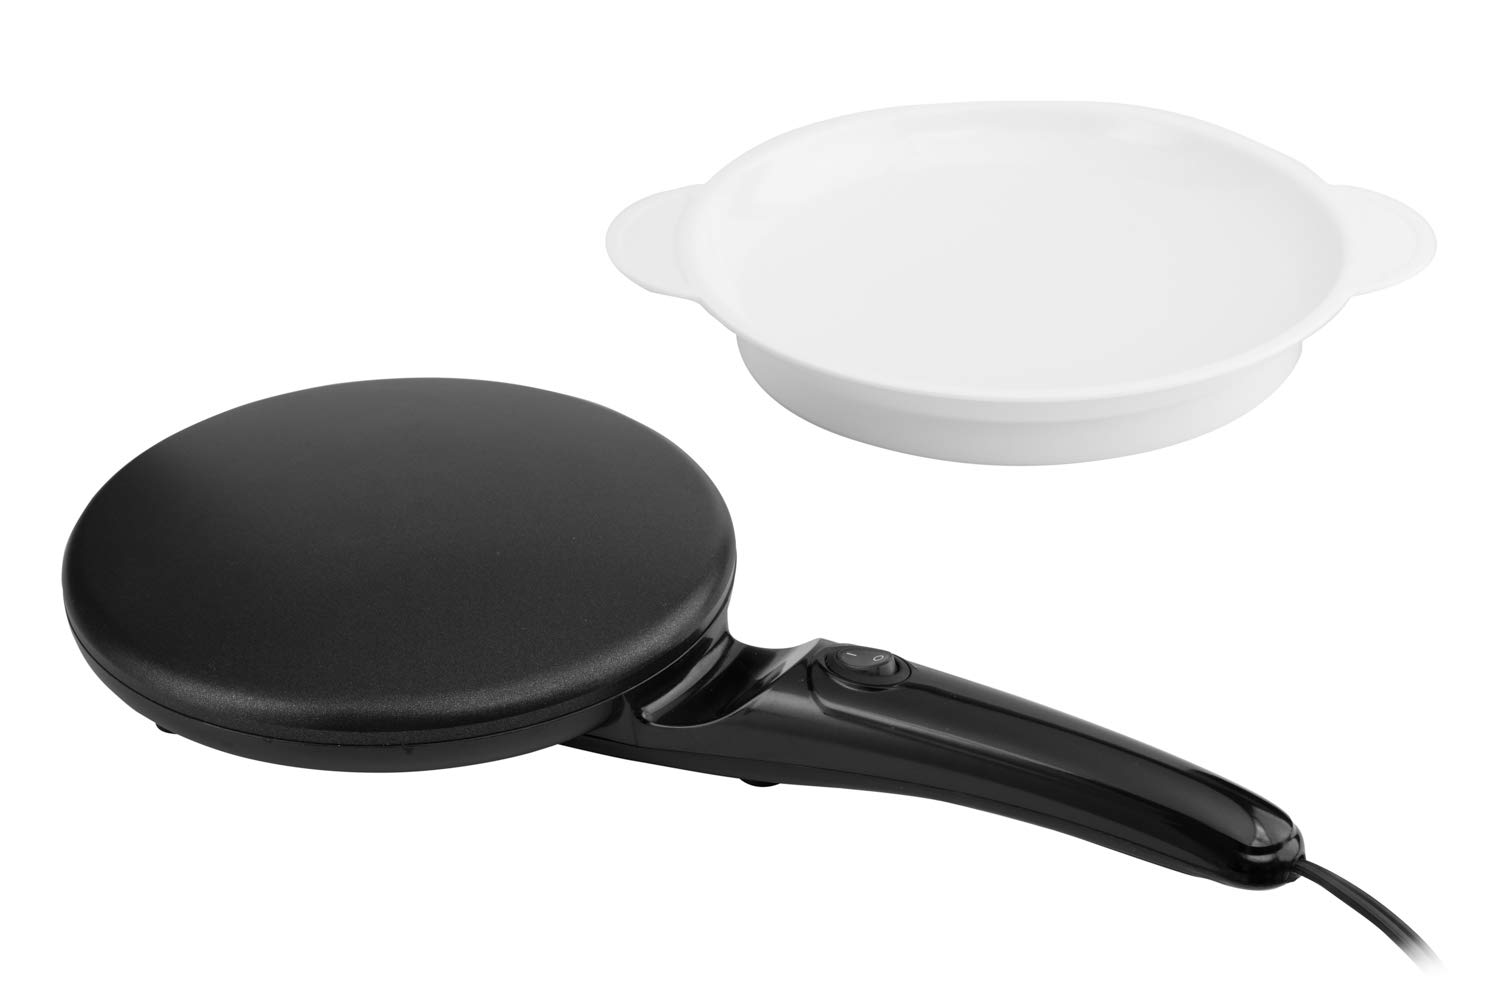 Moss Stone 8 Electric Crepe Maker I Pan Style I Hot Plate Cooktop I ON OFF Switch I Nonstick Coating I Automatic Temperature Control I Easy to use I Pancakes, Blintz, Chapati, Tortillas